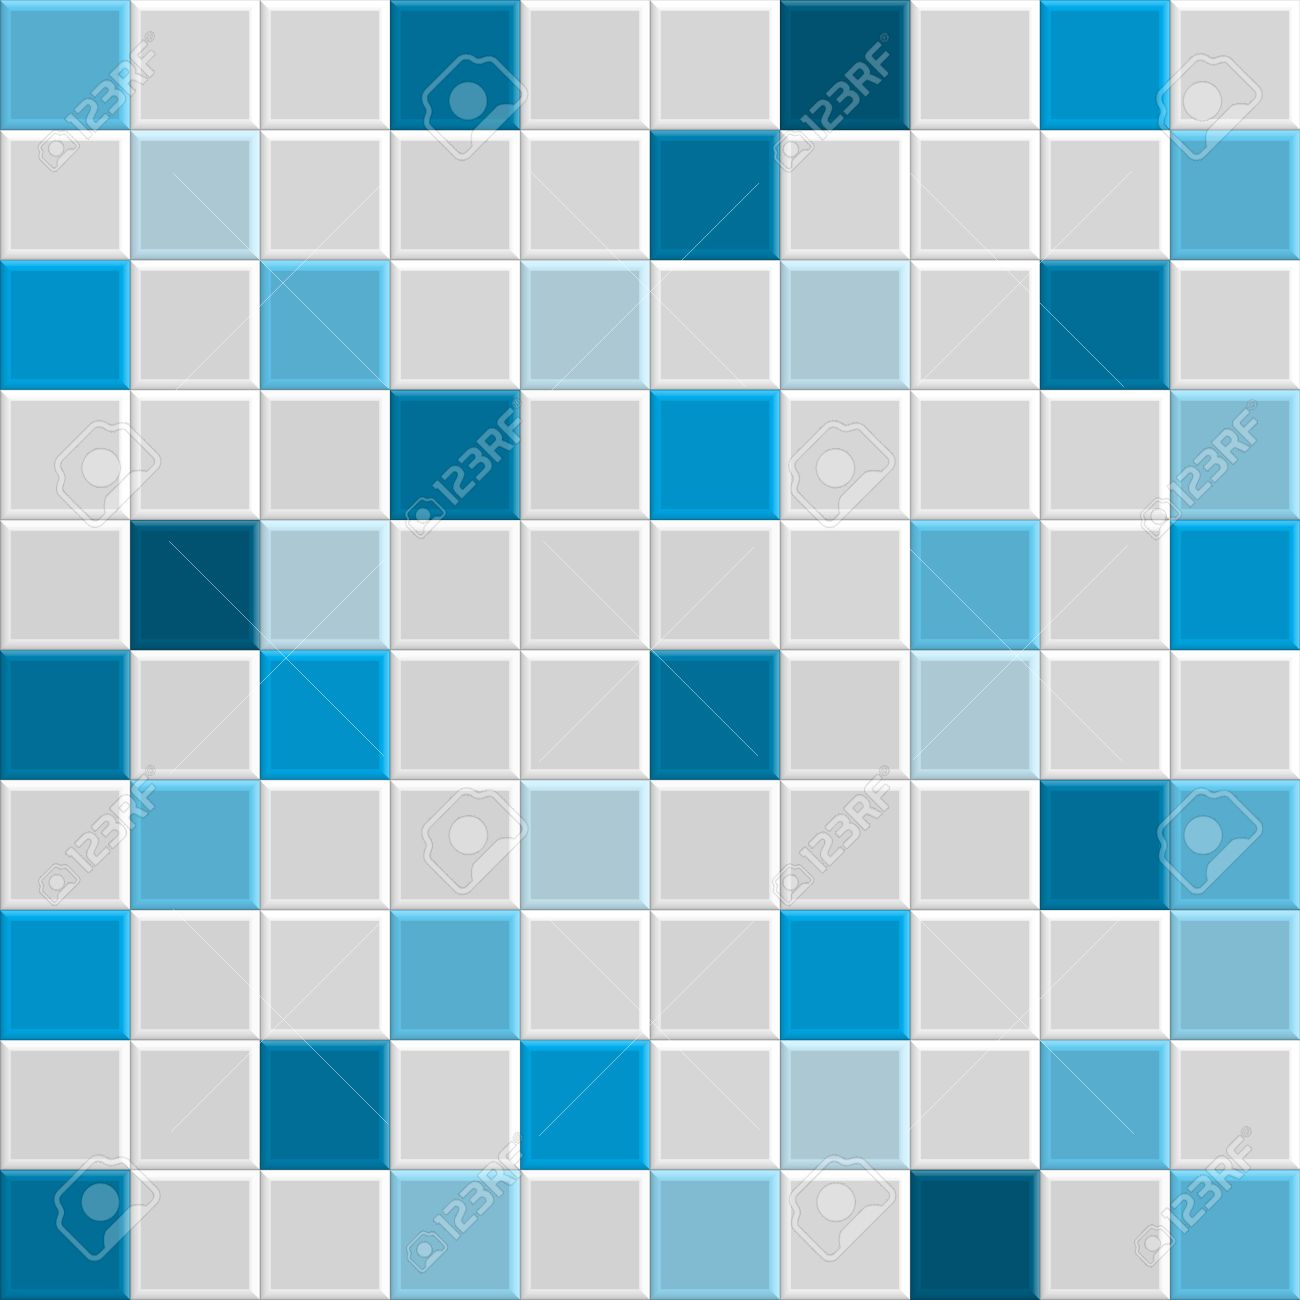 Bathroom Floor Tile Texture perfect kitchen blue tiles texture generated seamless tile